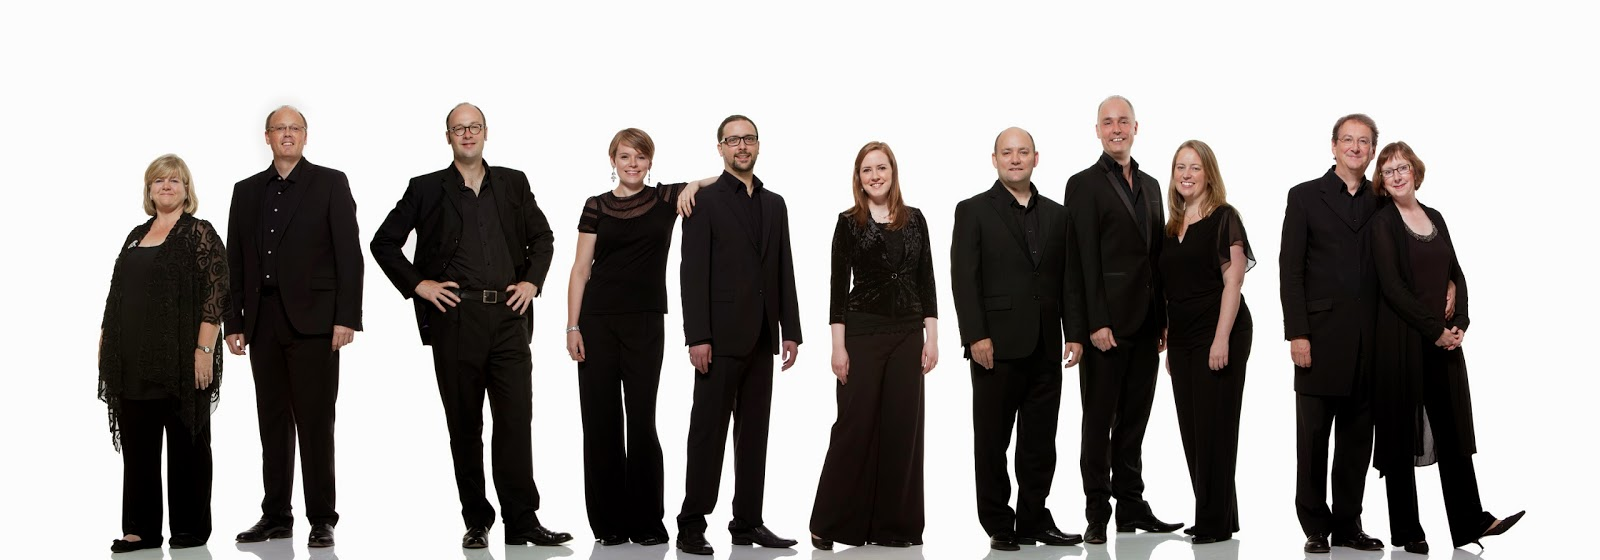 The Tallis Scholars - credit Edic Richmond